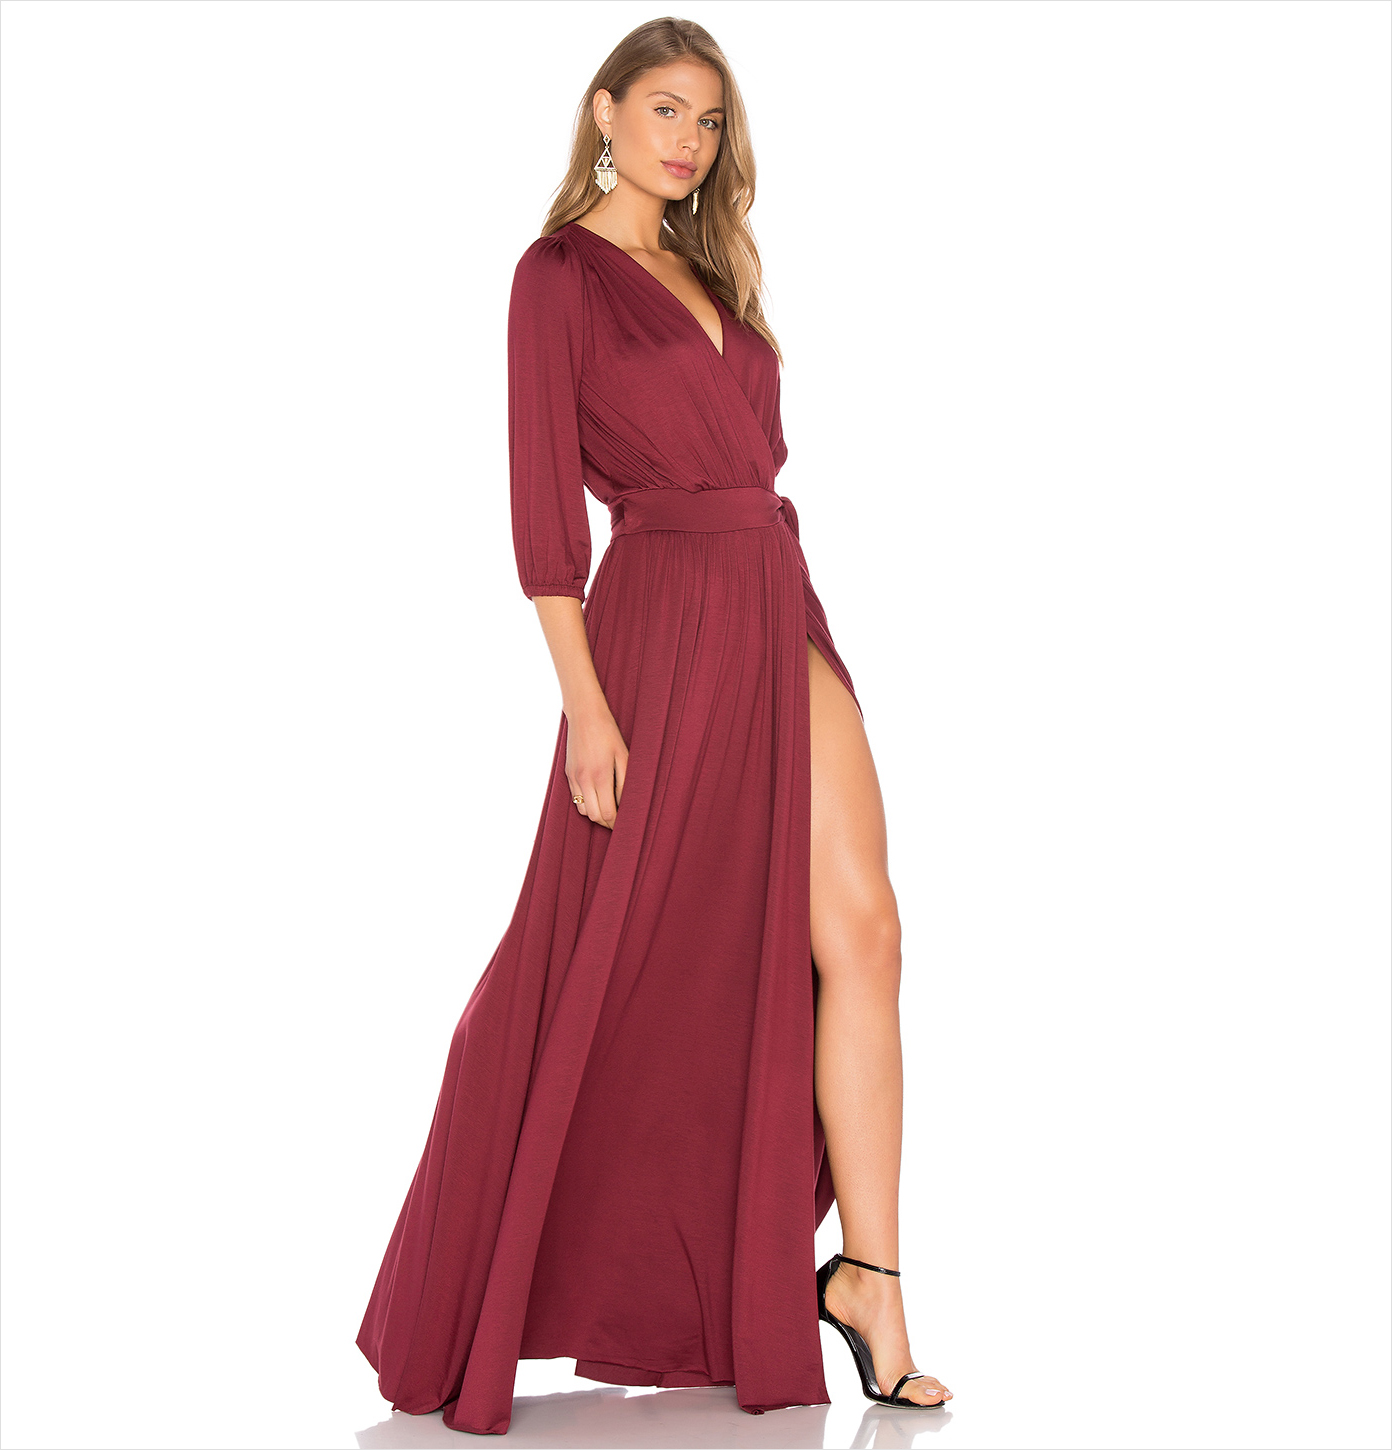 Wedding guest dress ideas long sleeve dresses inside for Dresses for a winter wedding guest